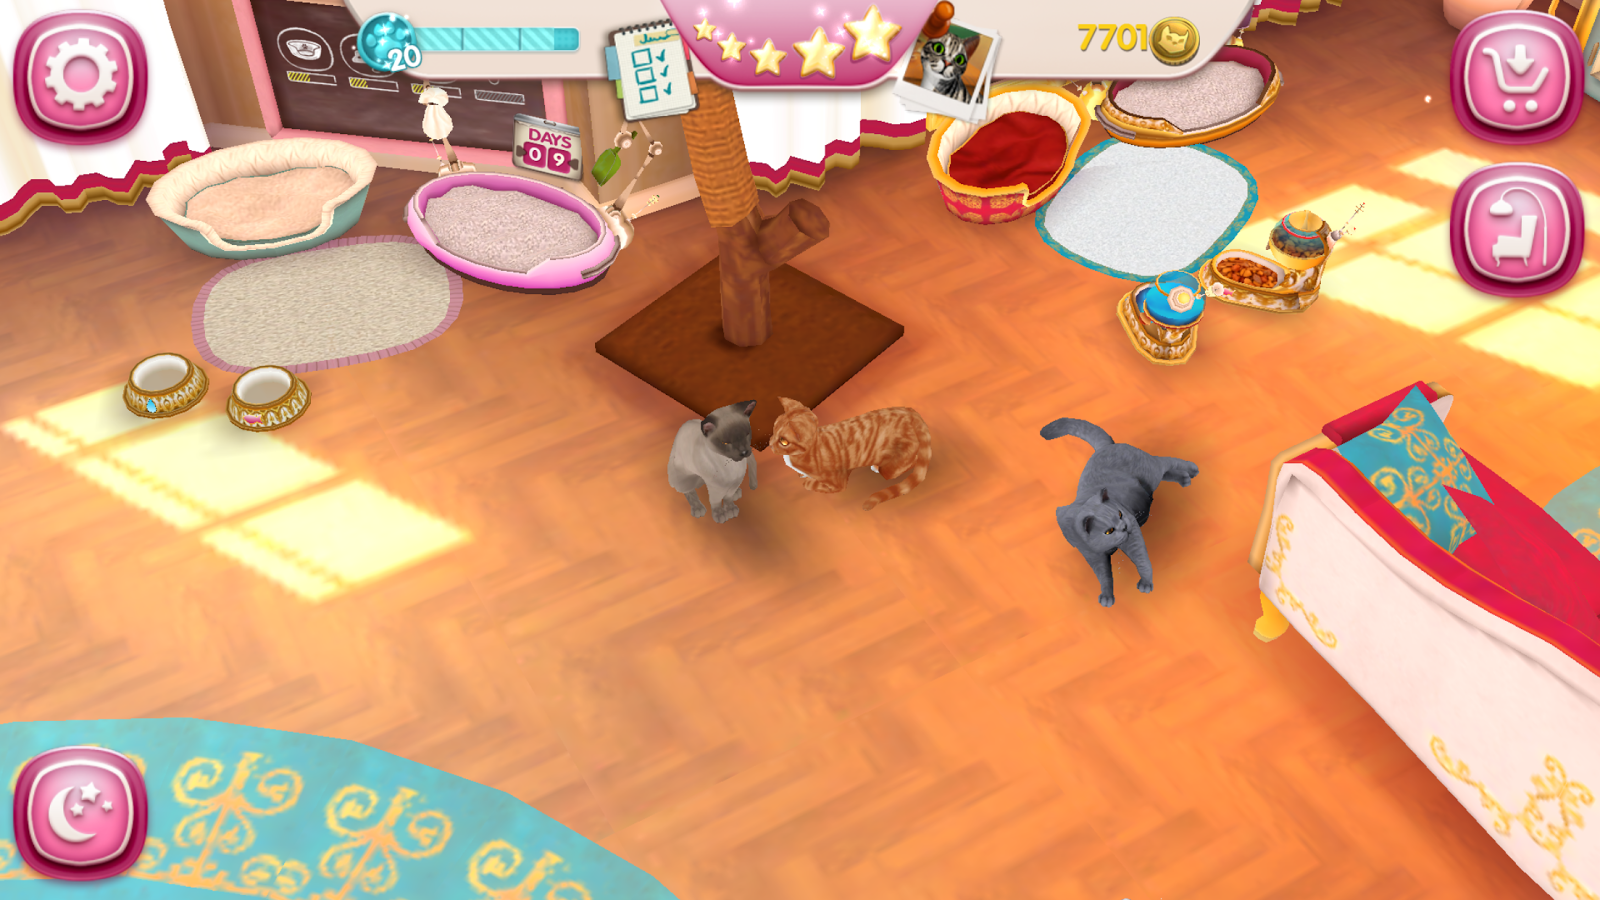 CatHotel - Hotel for cute cats Screenshot 7